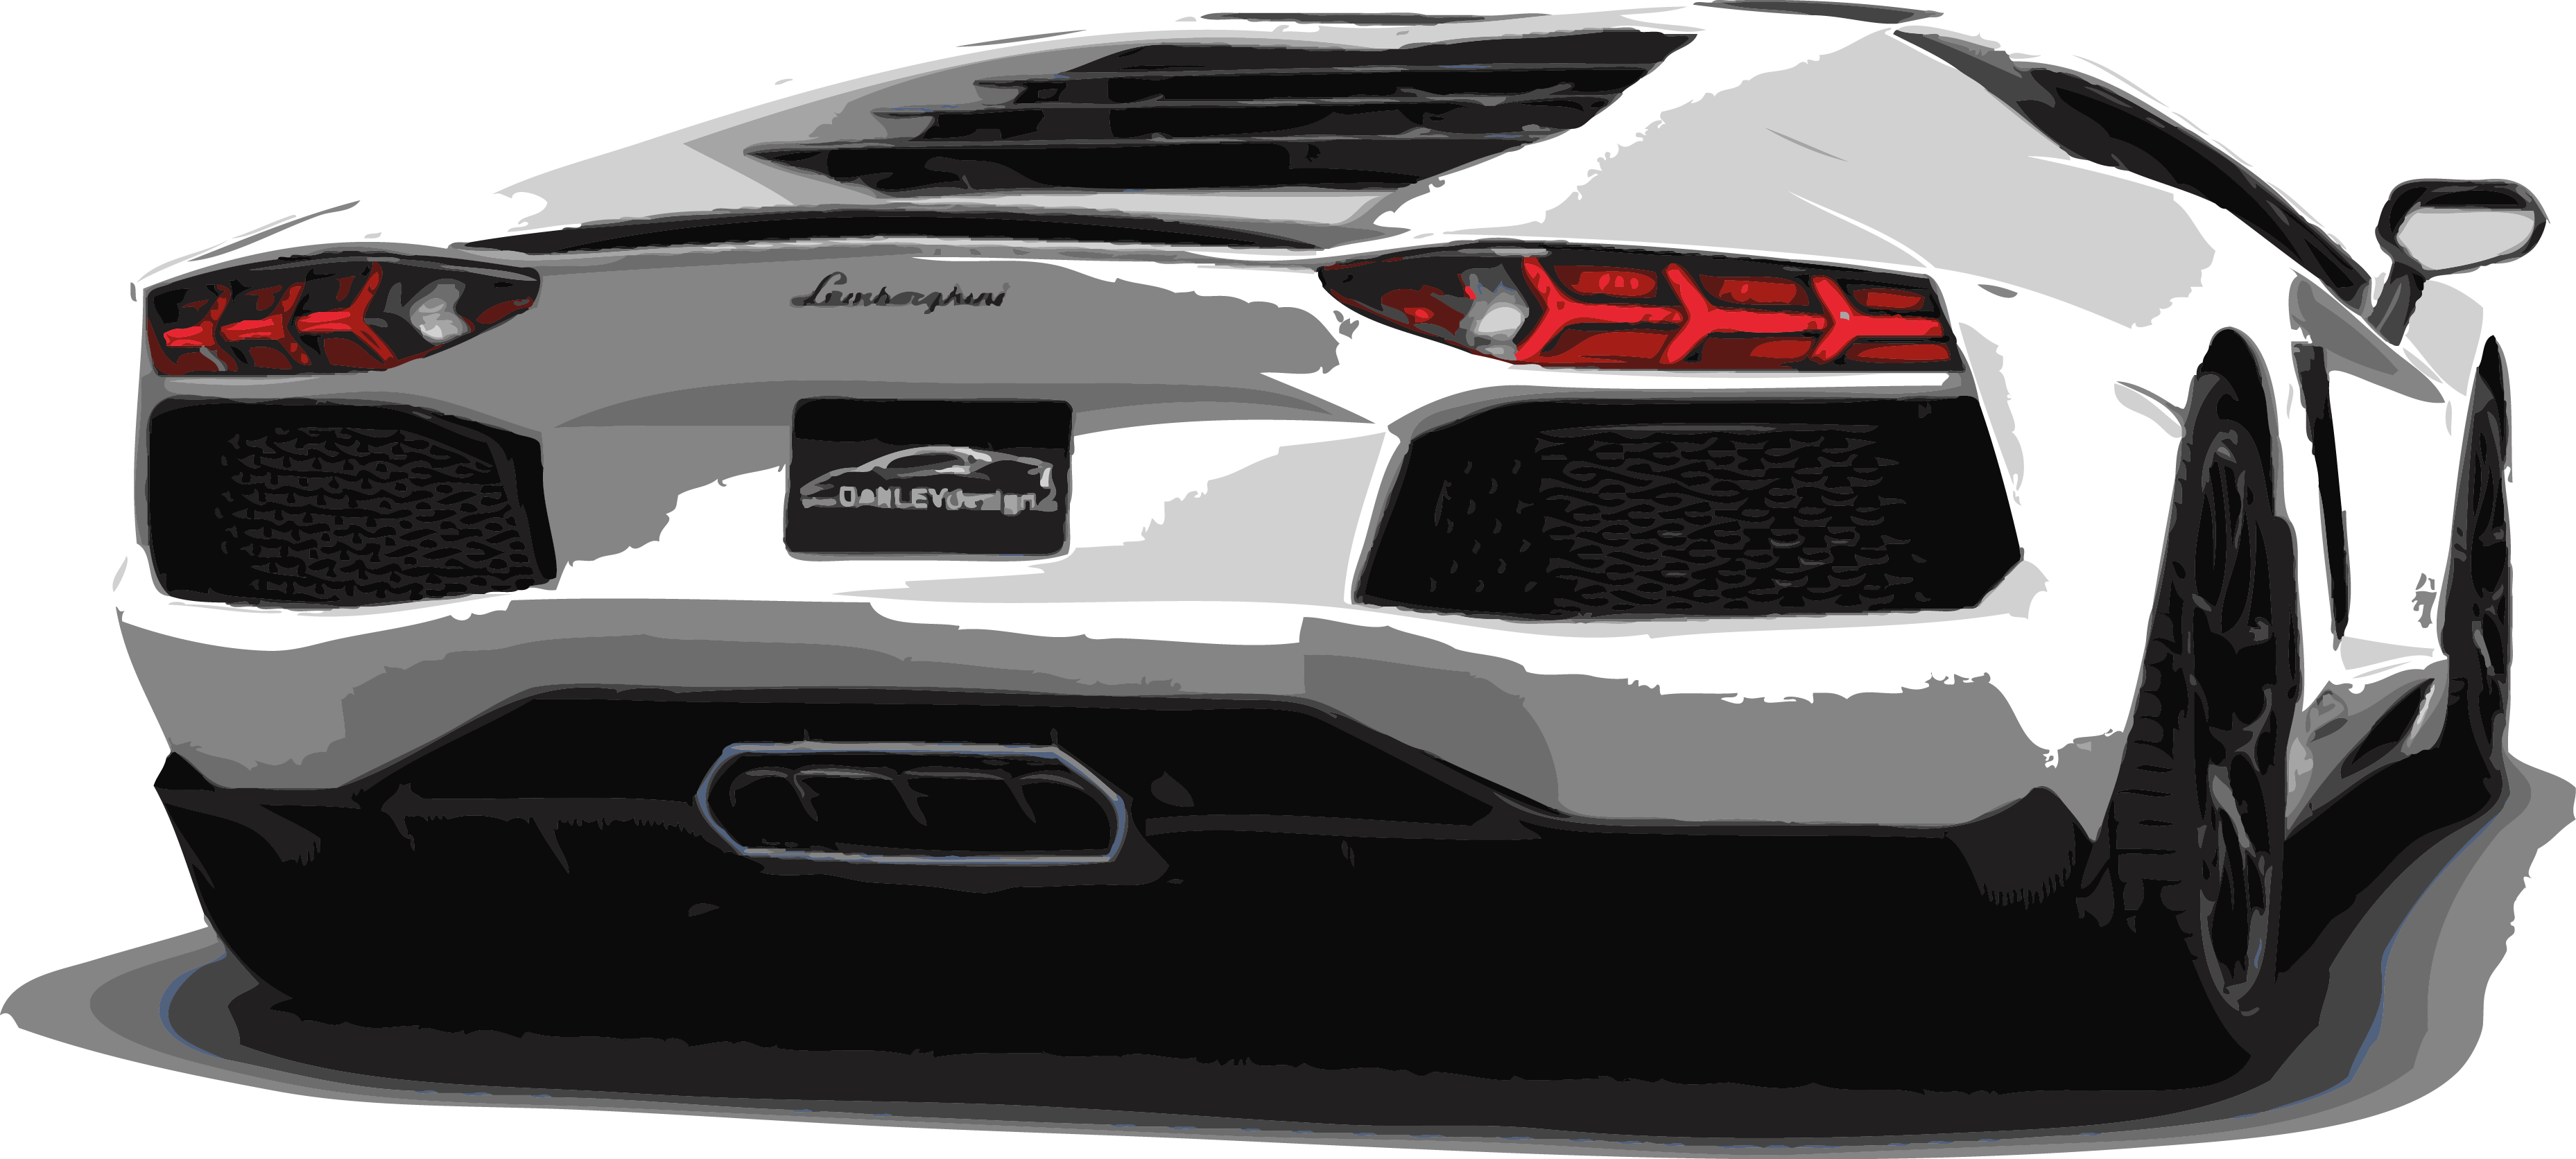 Lambo transparent cartoon. Lamborghini aventador gallardo sports